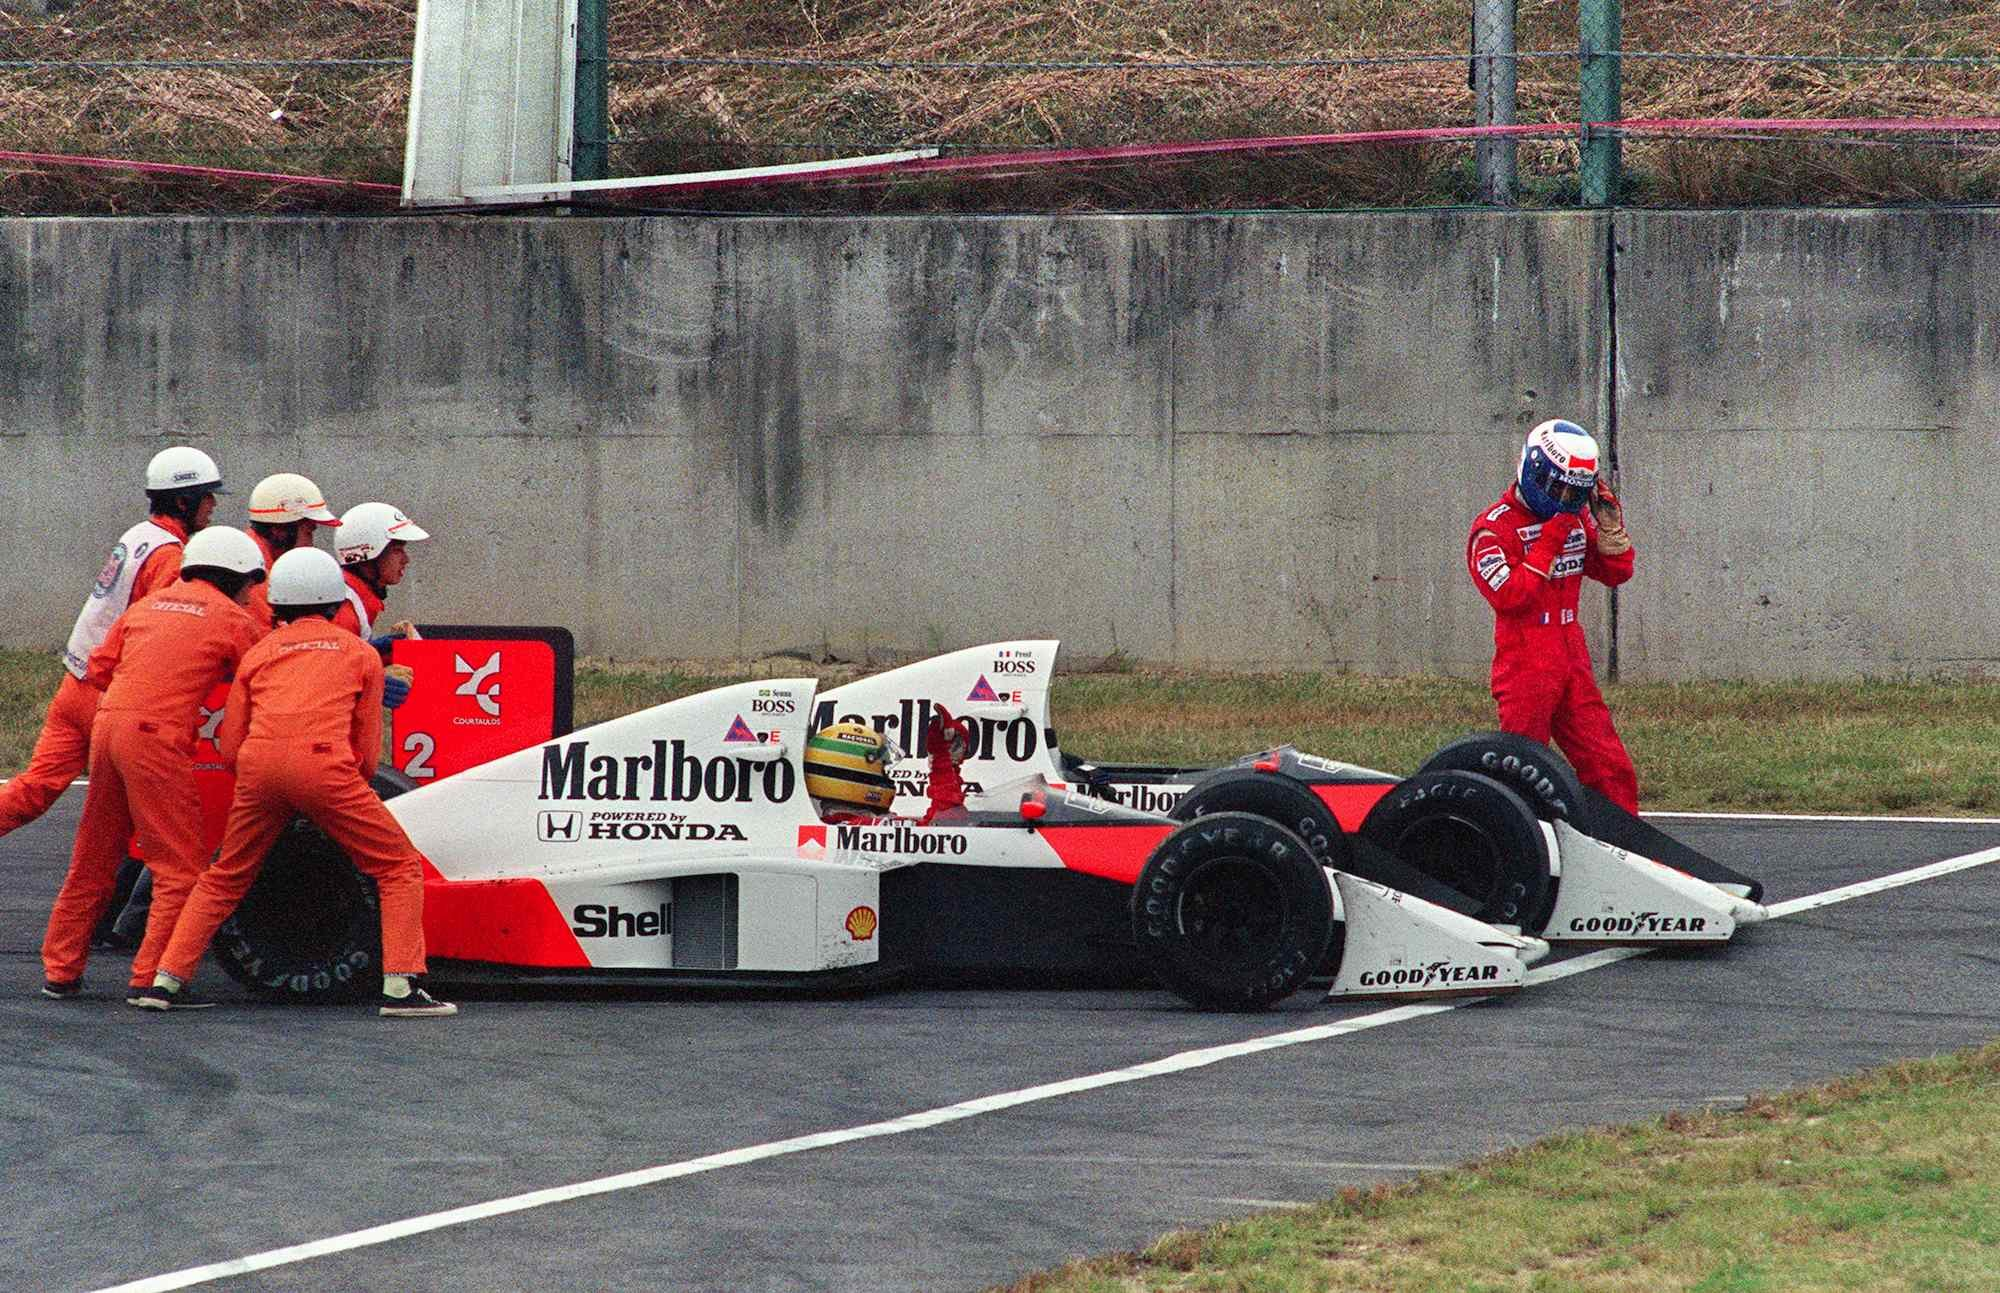 Ayrton Senna of Brazil is given a push from circuit marshals for a restart